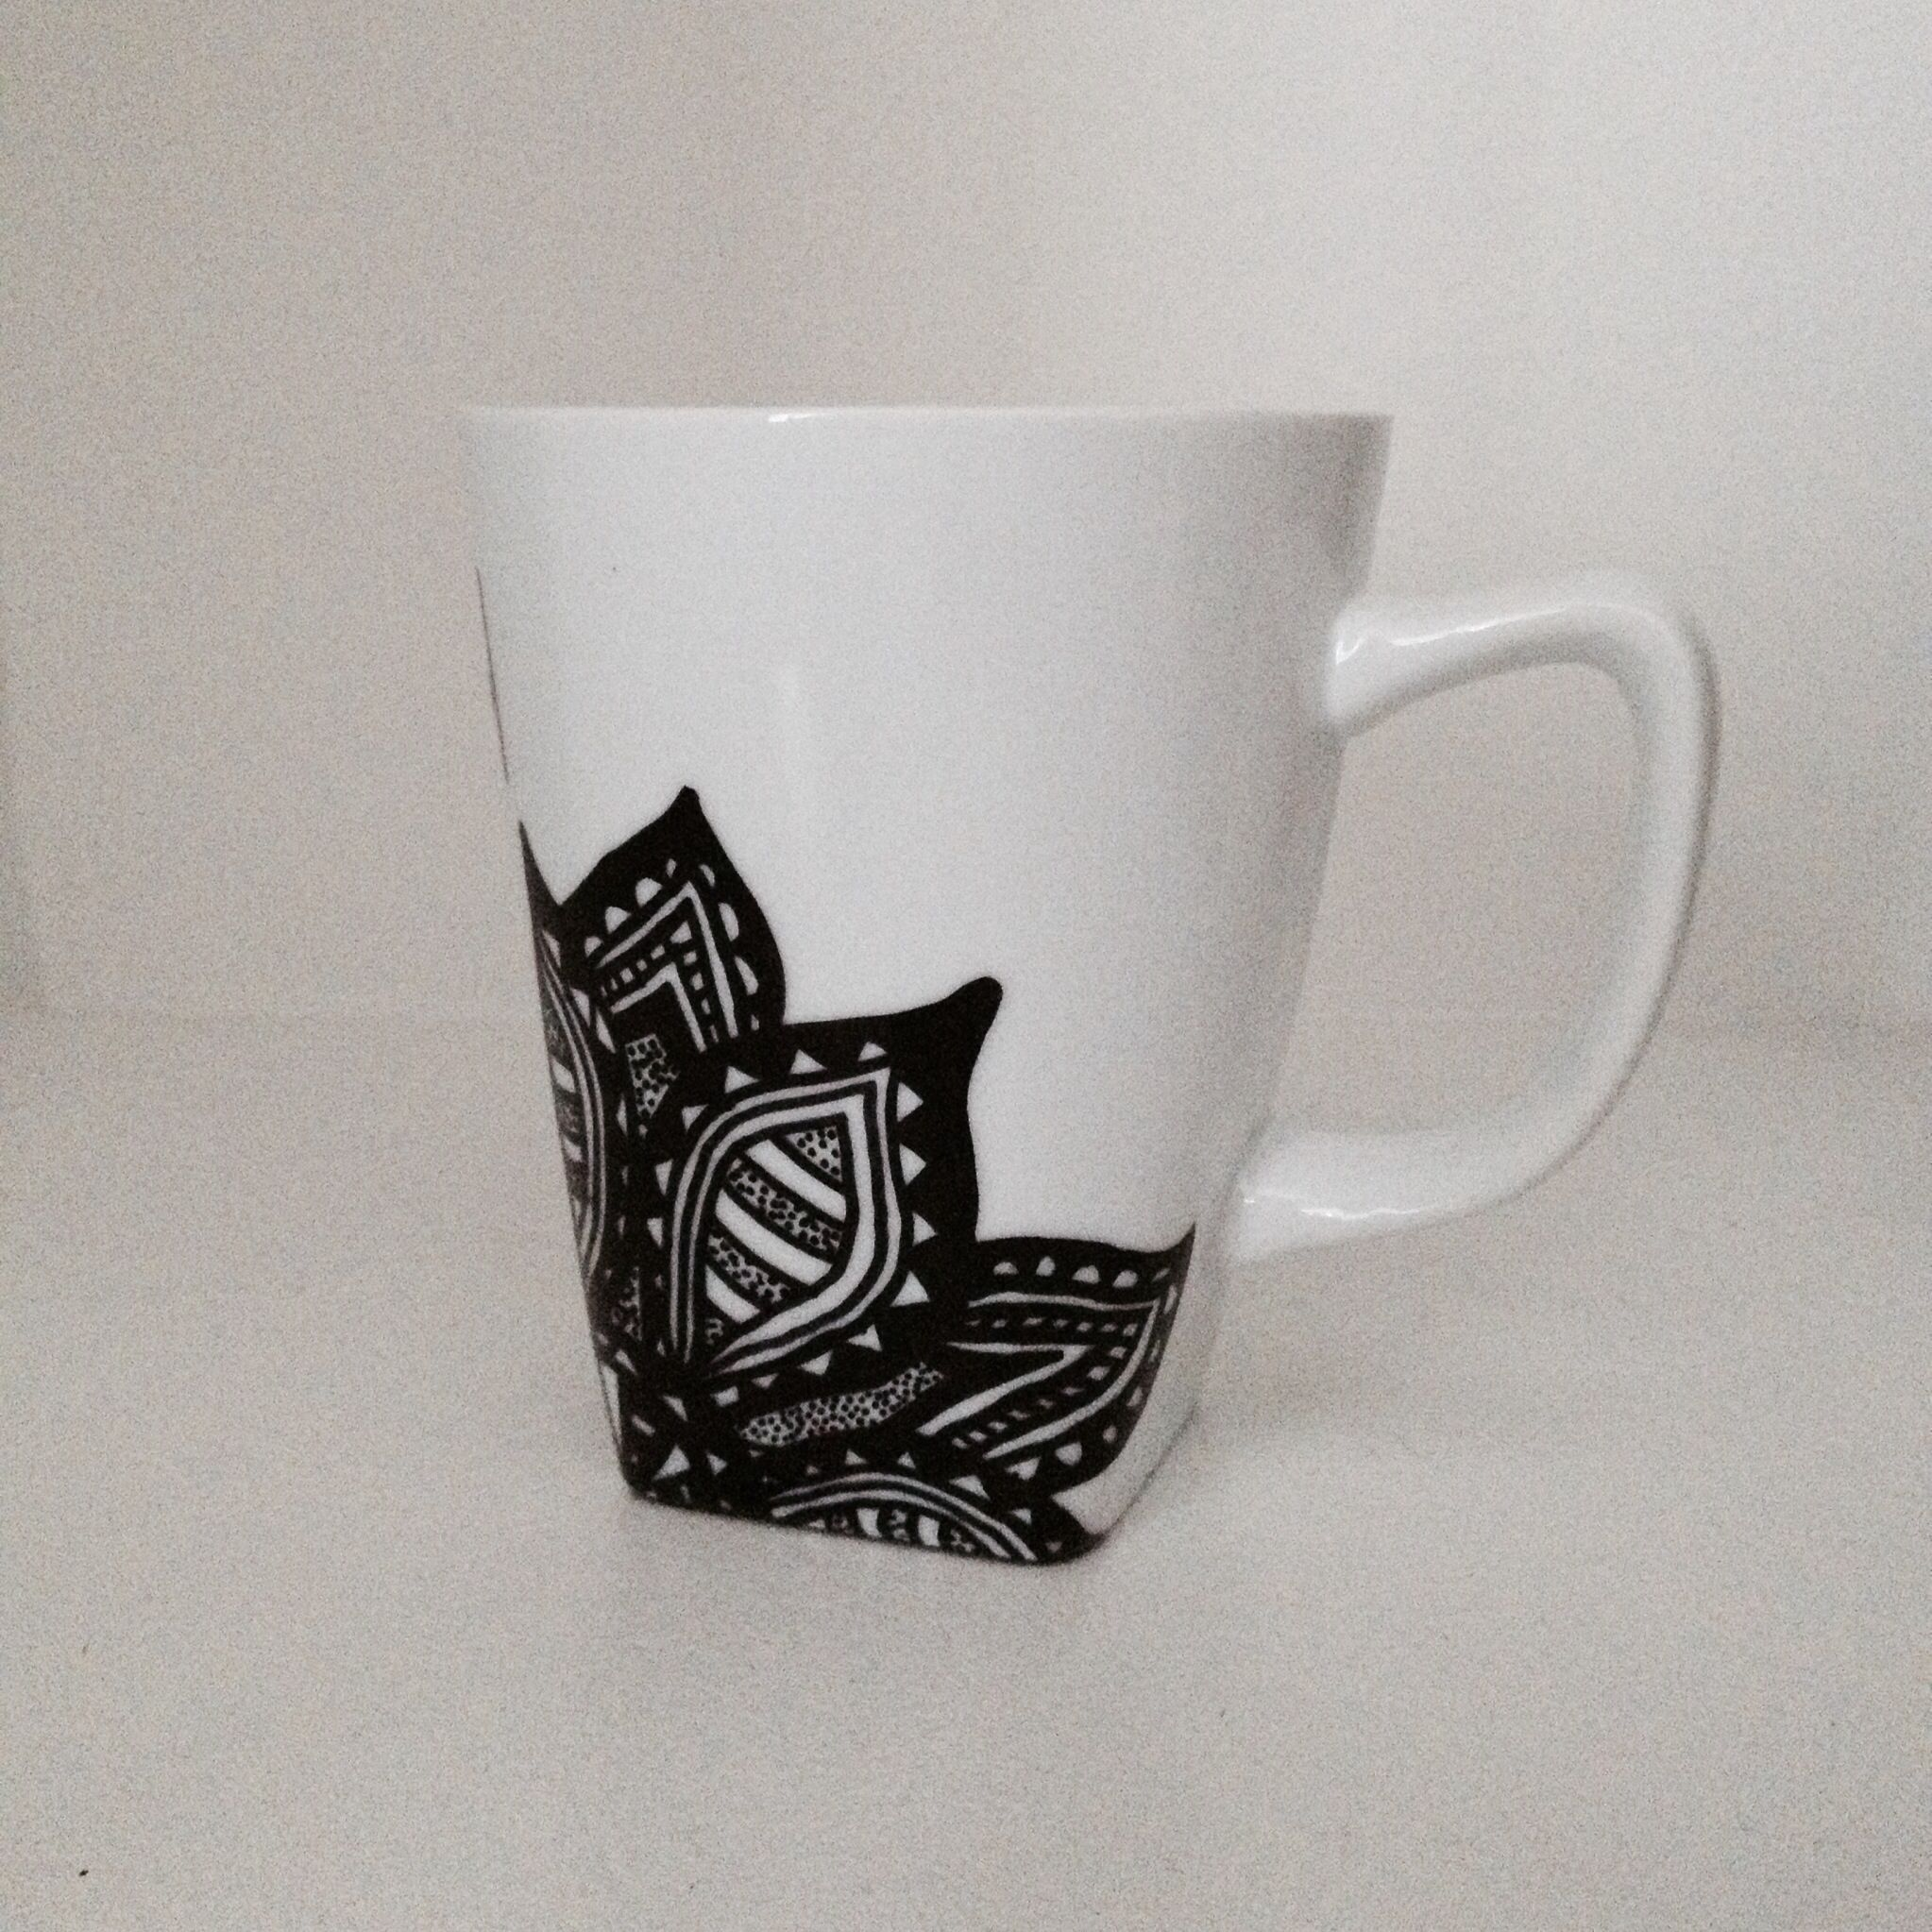 Designer Cups And Mugs Flower Sharpie Mug Diy Mugs Diy Sharpie Mug